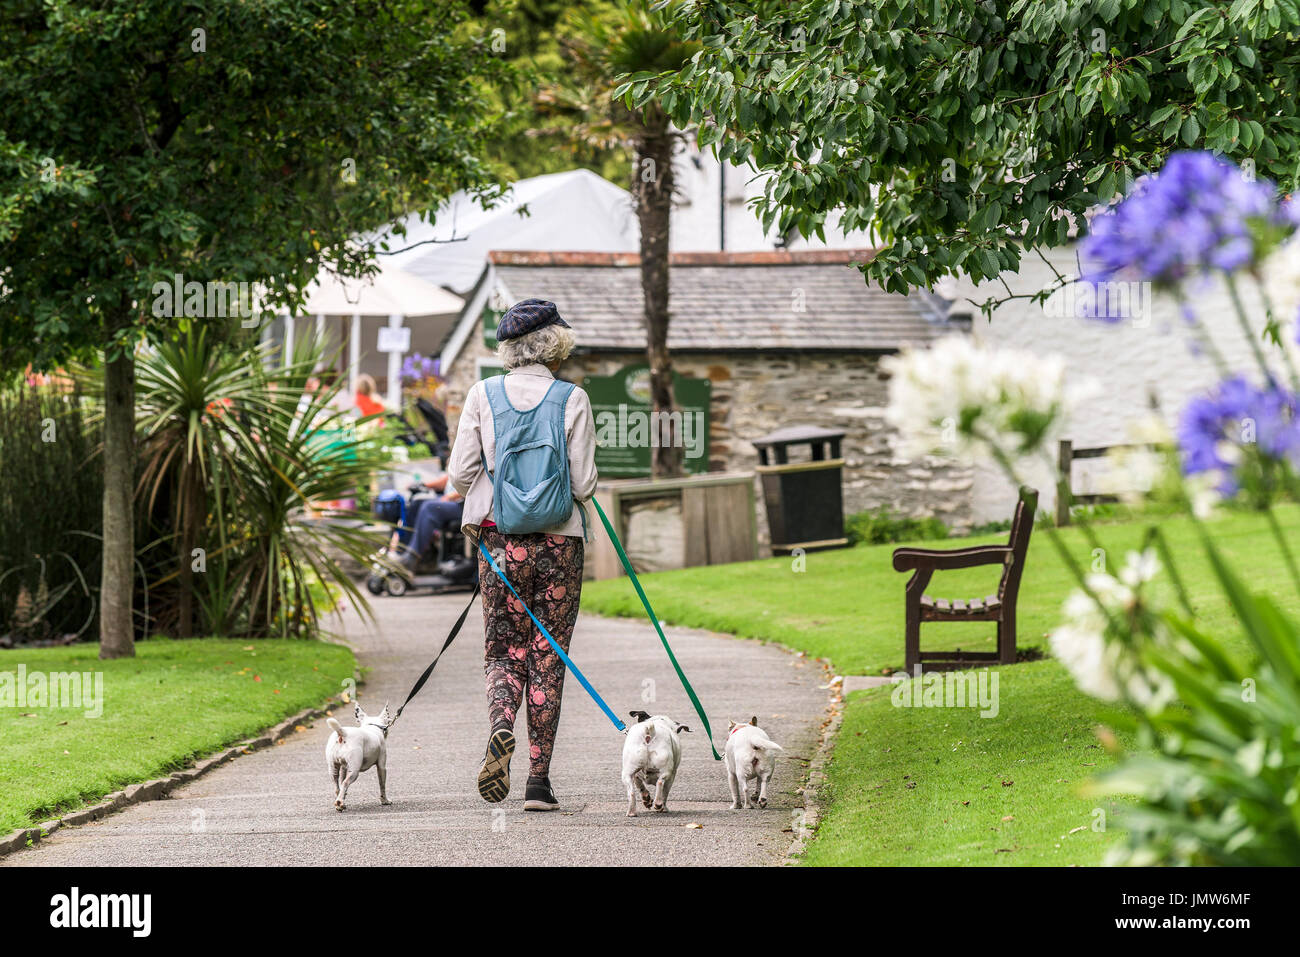 A dog walker with three small dogs in Trenance Gardens in Newquay, Cornwall. - Stock Image